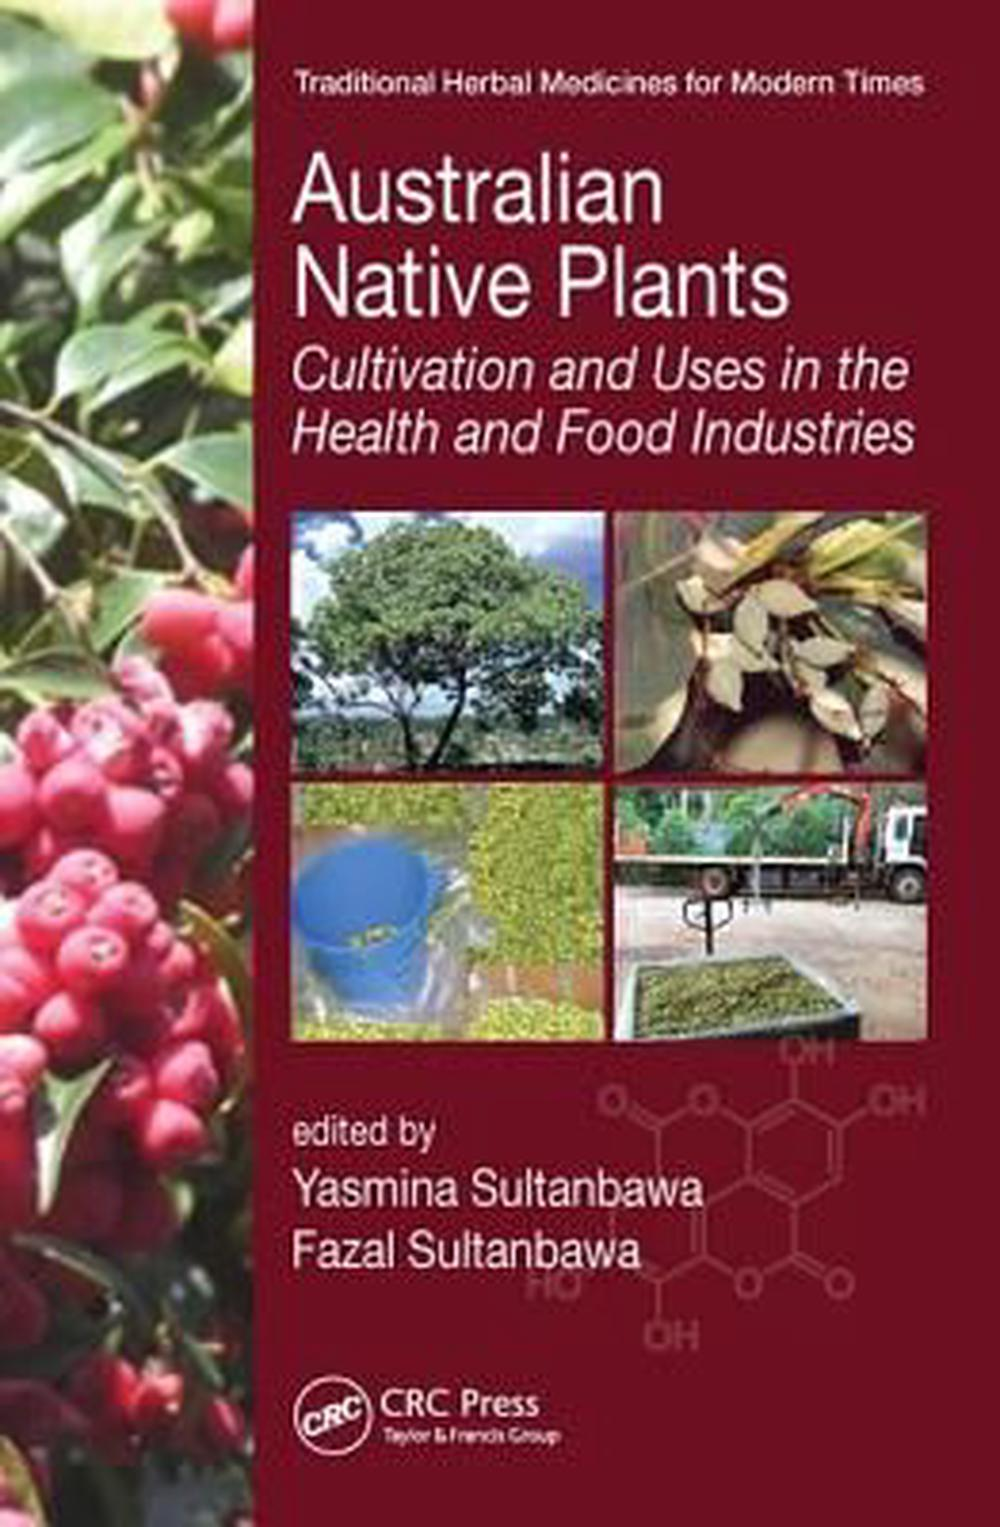 Australian Native Plants: Cultivation and Uses in Alternative Medicine and the Food Industry (Traditional Herbal Medicines for Modern Times)